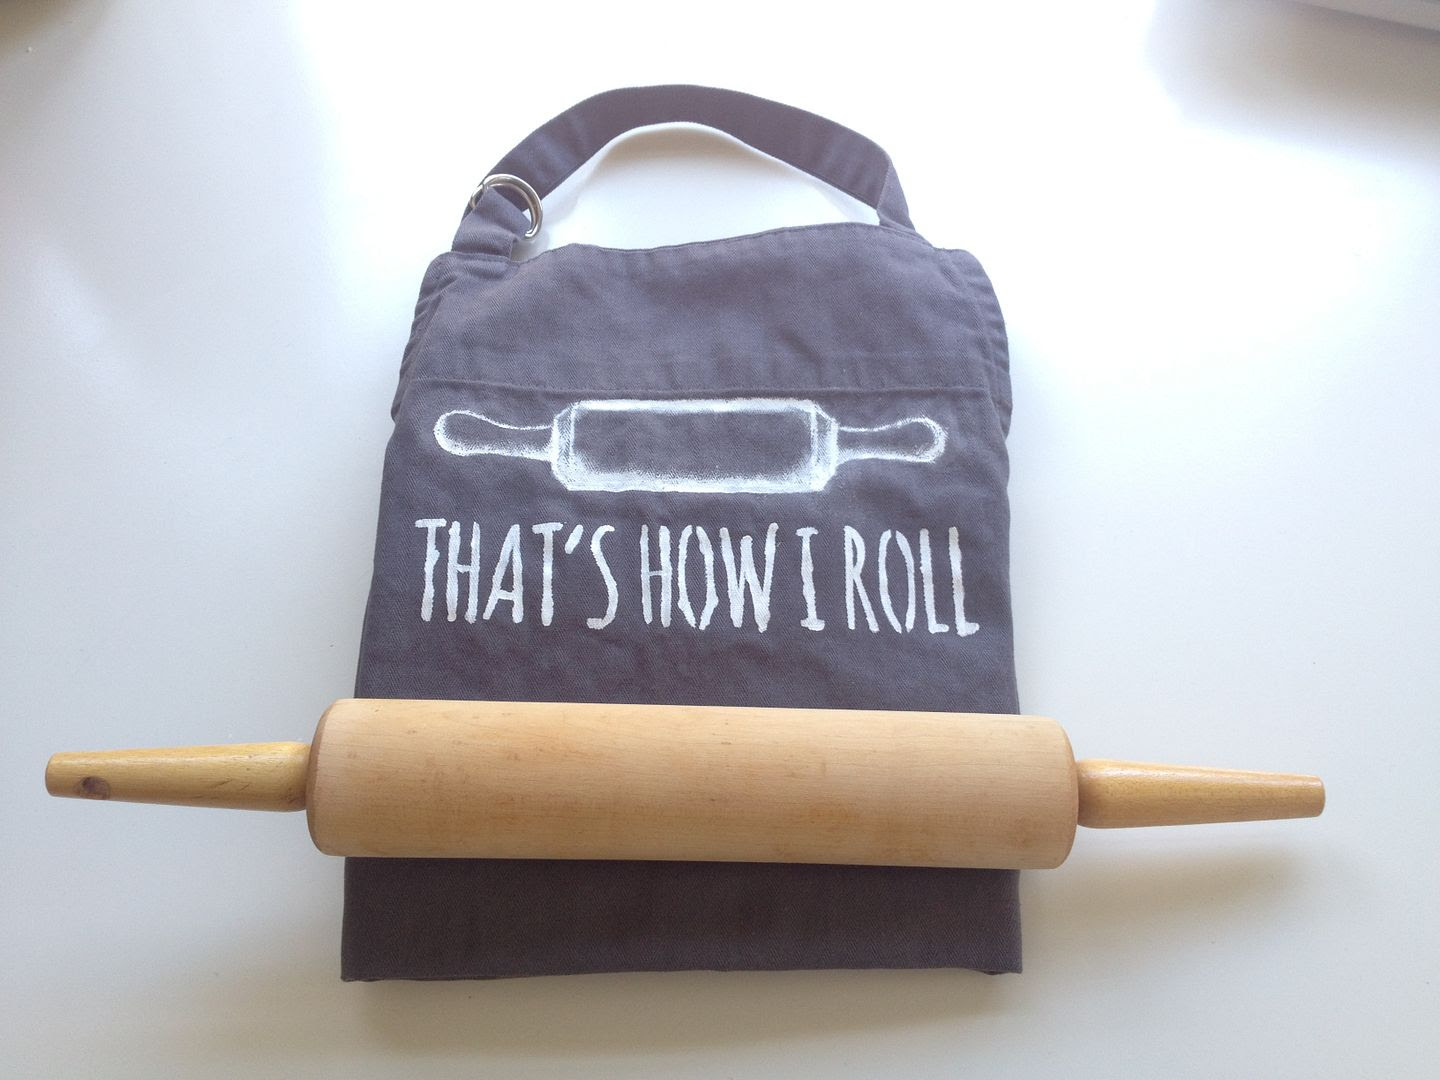 That's How I Roll photo 2015-06-02 14.23.01_zpsfcdnmg96.jpg